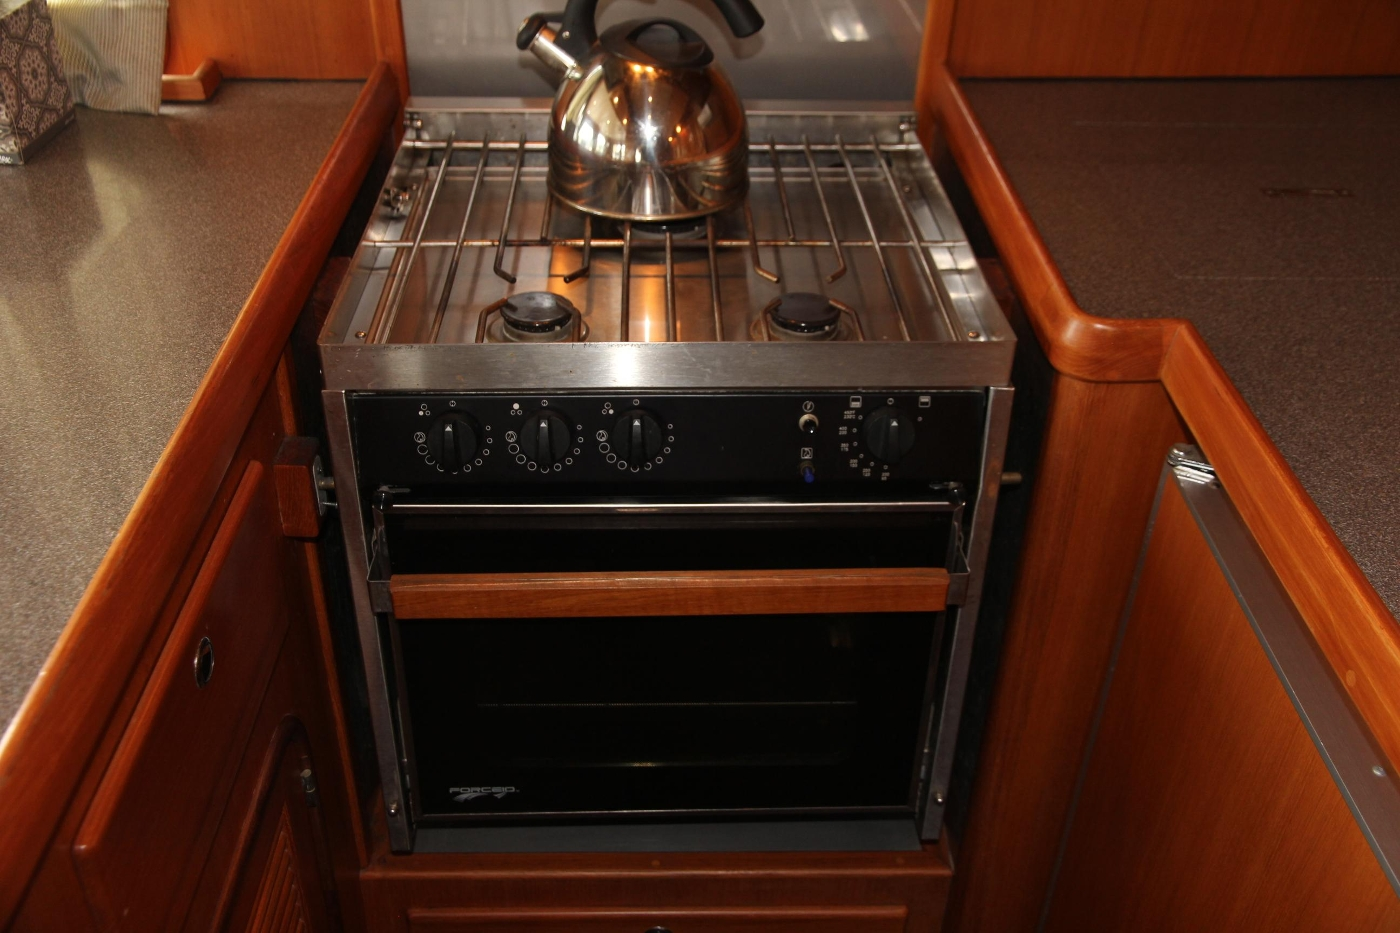 2000 Nordhavn Pilothouse, Propane Stove and Oven